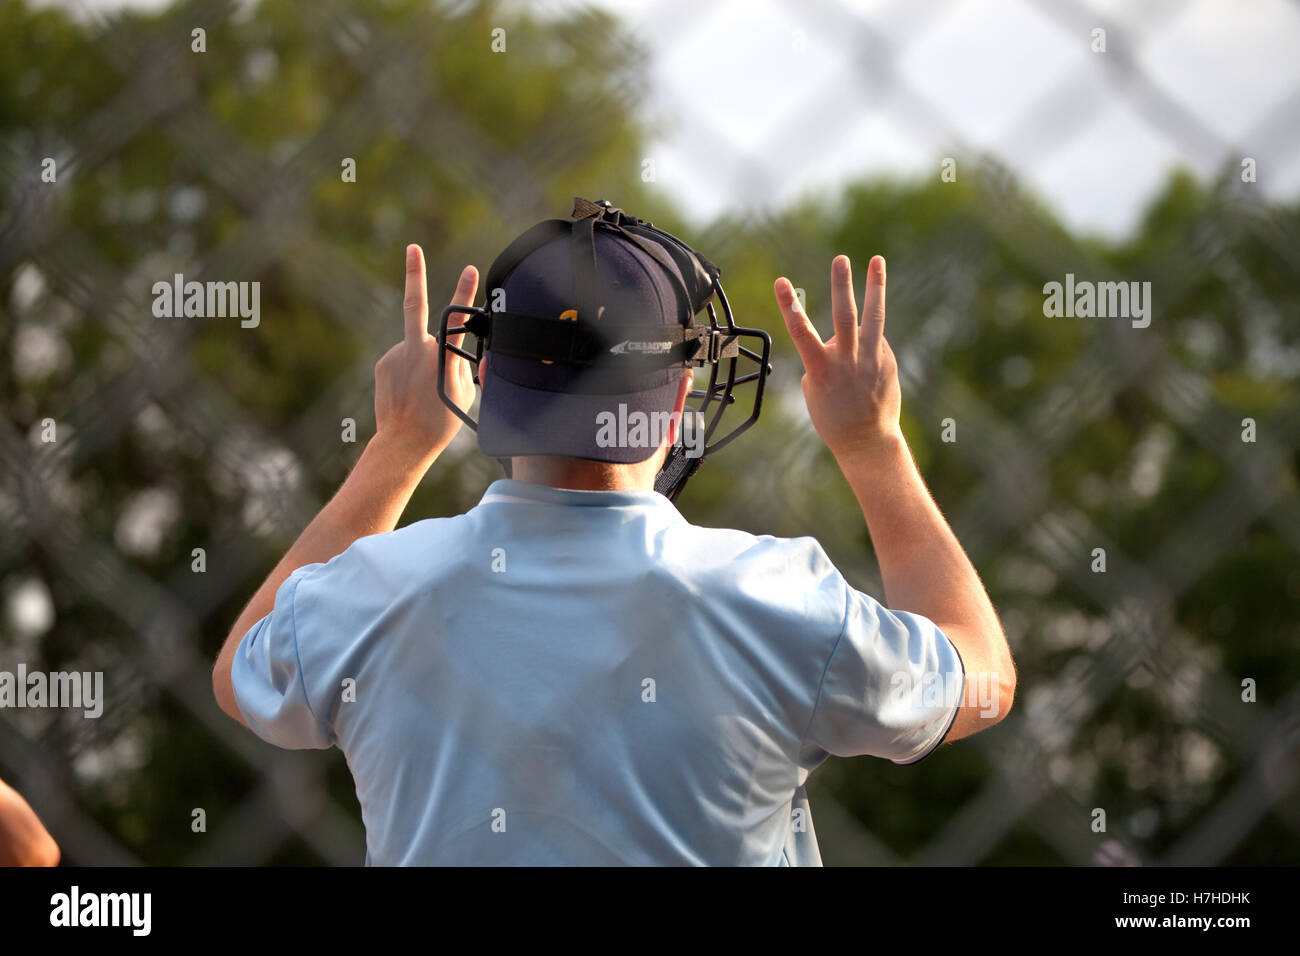 umpire in youth baseball game indicates full count with two fingers